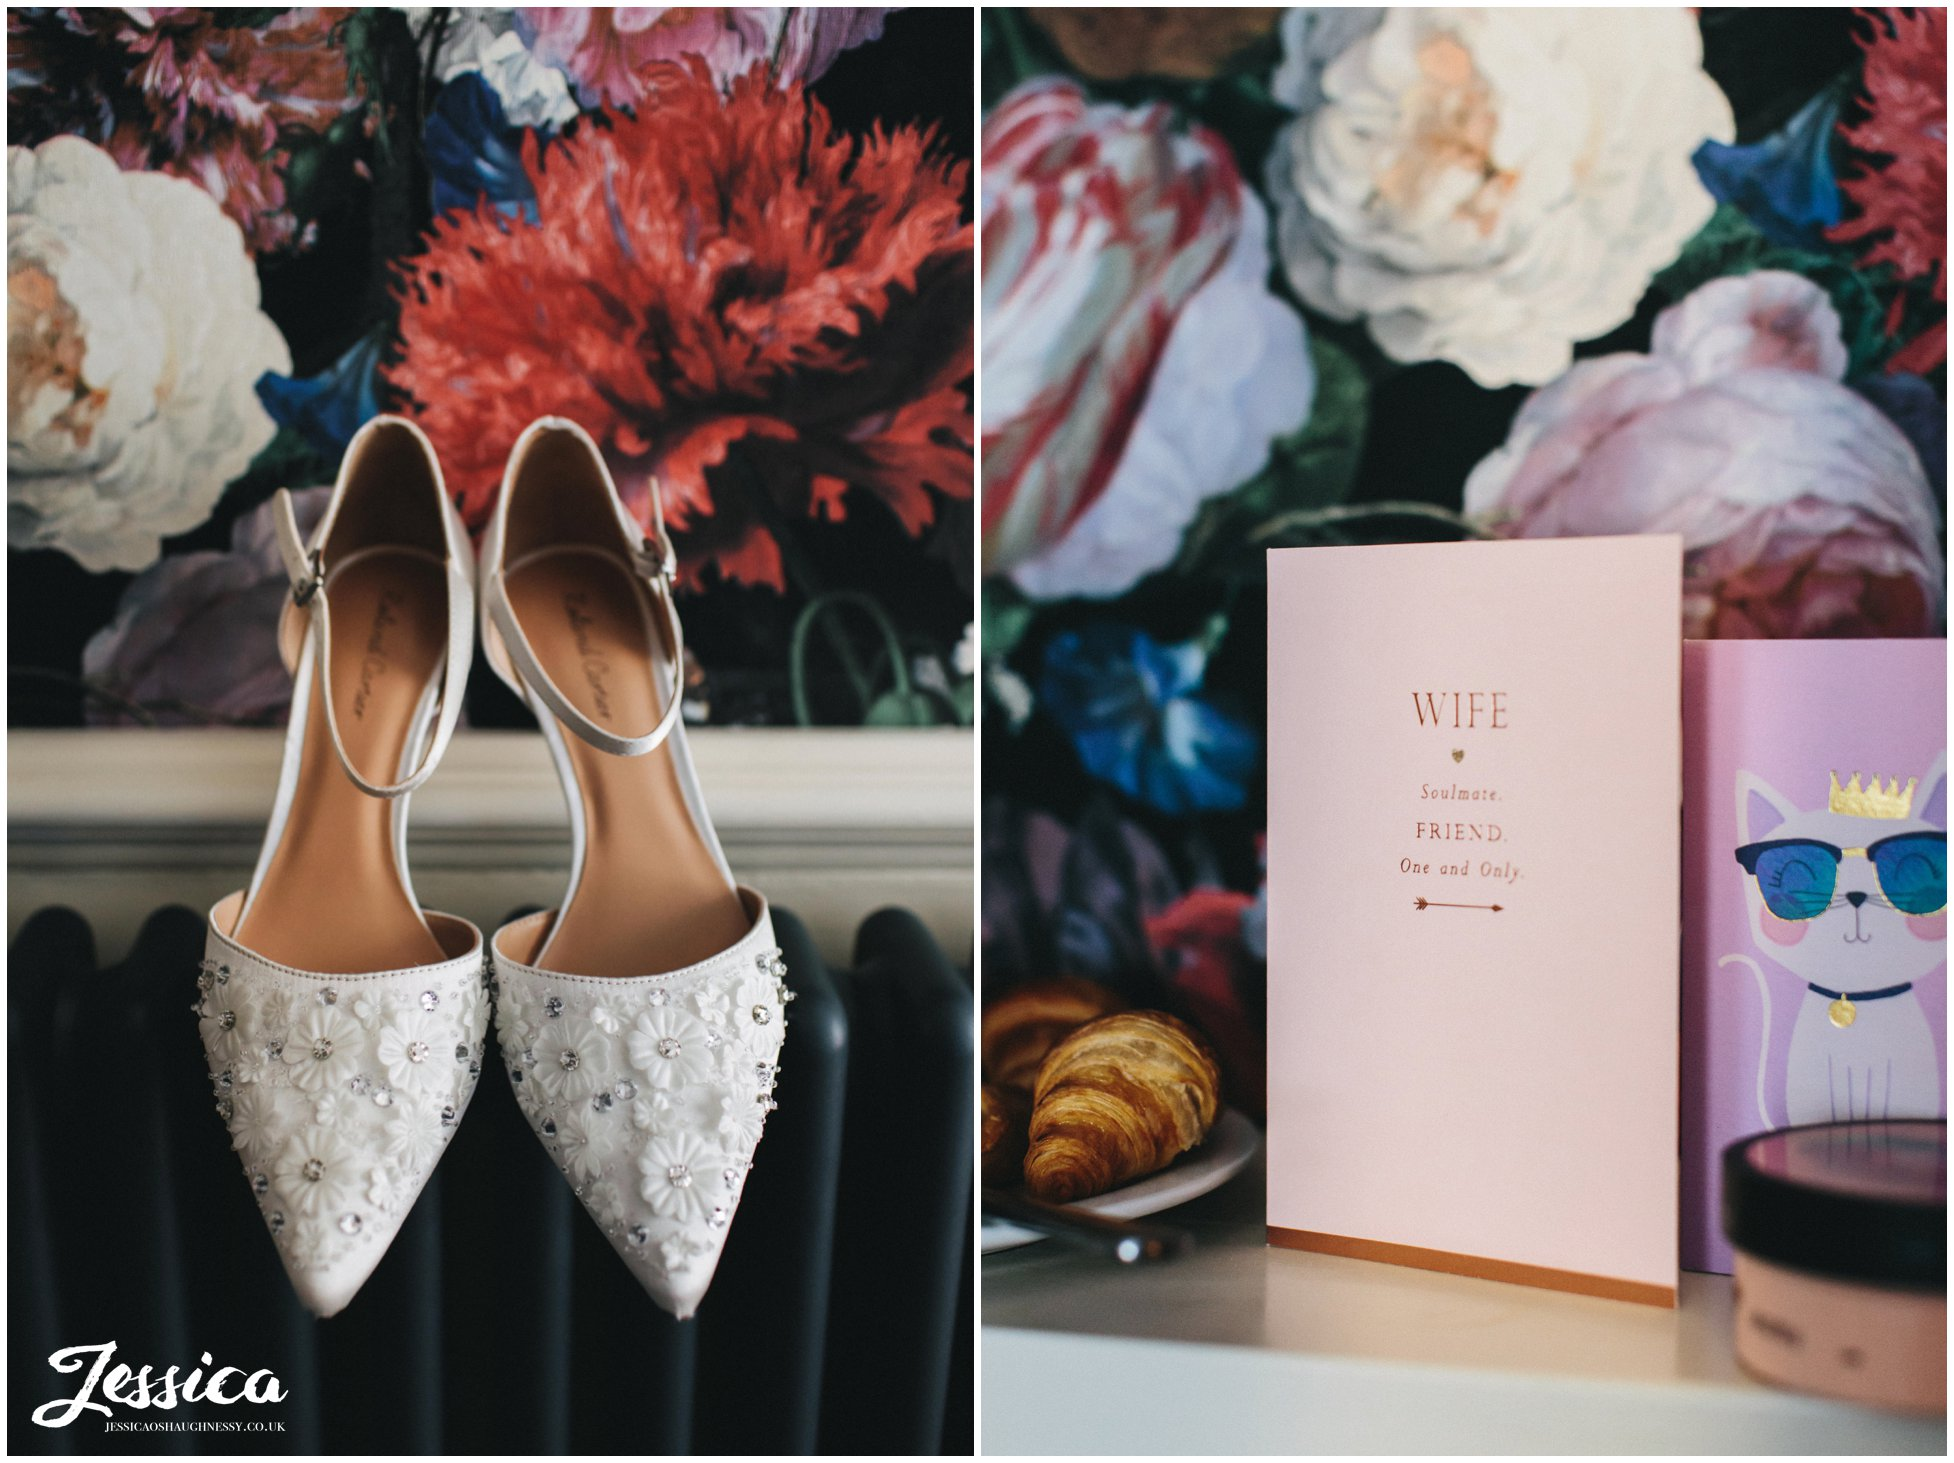 Brides shoes hung against the floral wallpaper